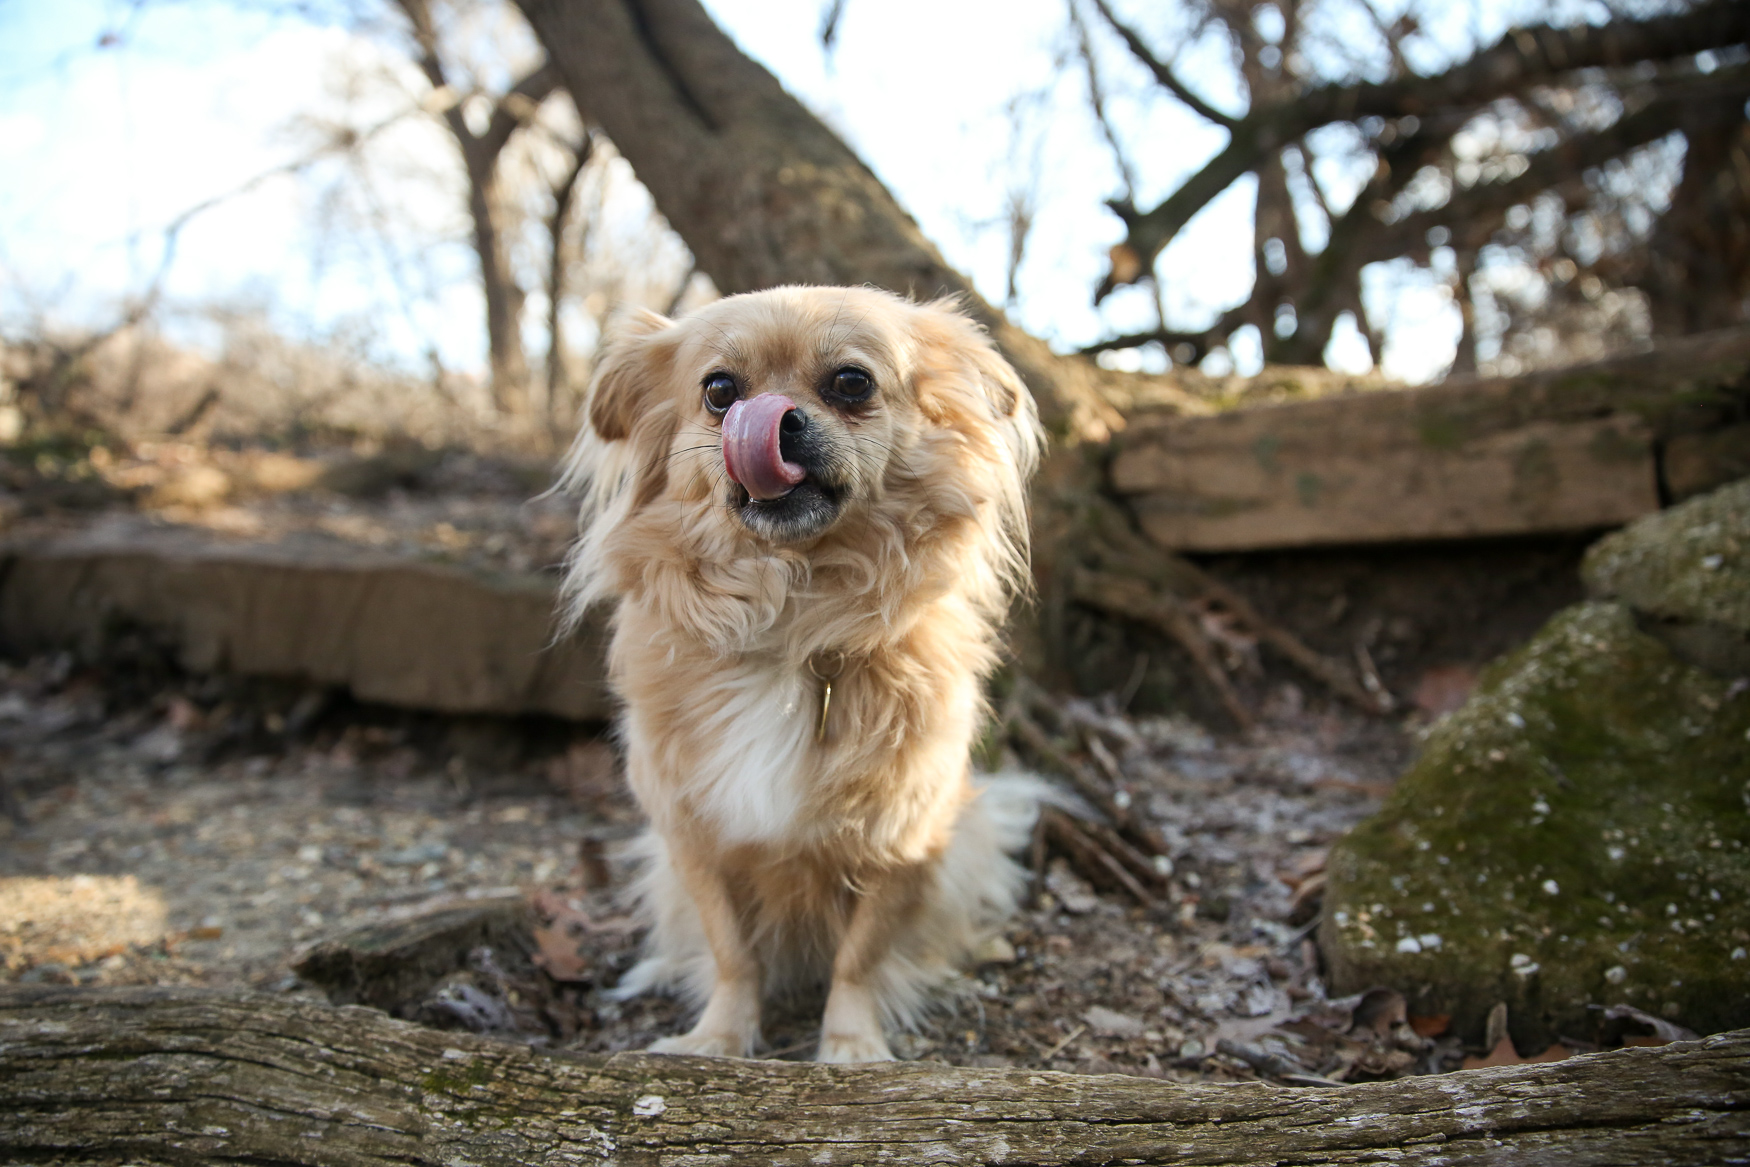 Meet Eloise, a 5-year-old Chihuahua/Pekingese (at least according to her DNA test) pup who we can't get enough of! If you want to follow her adventures, she is on Instagram at @eloiseindc.{ } Eloise is a rescue from South Carolina who came up to D.C. thanks to the volunteers at Mary Ann Morris Animal Society. Fittingly, her mom adopted her on Mother's Day 2015. Eloise loves snuggles, scallops, Golden Retrievers, bully sticks, squeaky toys that are far too big for her and running around Rock Creek Park like a maniac. She's not a fan of thunder, fireworks, skateboards/electric scooters, garbage trucks and bath time. Don't underestimate Eloise based on her size -- she once hiked Hawksbill Mountain to the summit, and despite being the smallest dog on the trail, she led the pack both up and down the trail! She's also been known to outrun Great Danes even though her legs are about three-inches long. If you're interested in having your pup featured, drop us a line at aandrade@dcrefined.com (Image: Amanda Andrade-Rhoades/DC Refined)